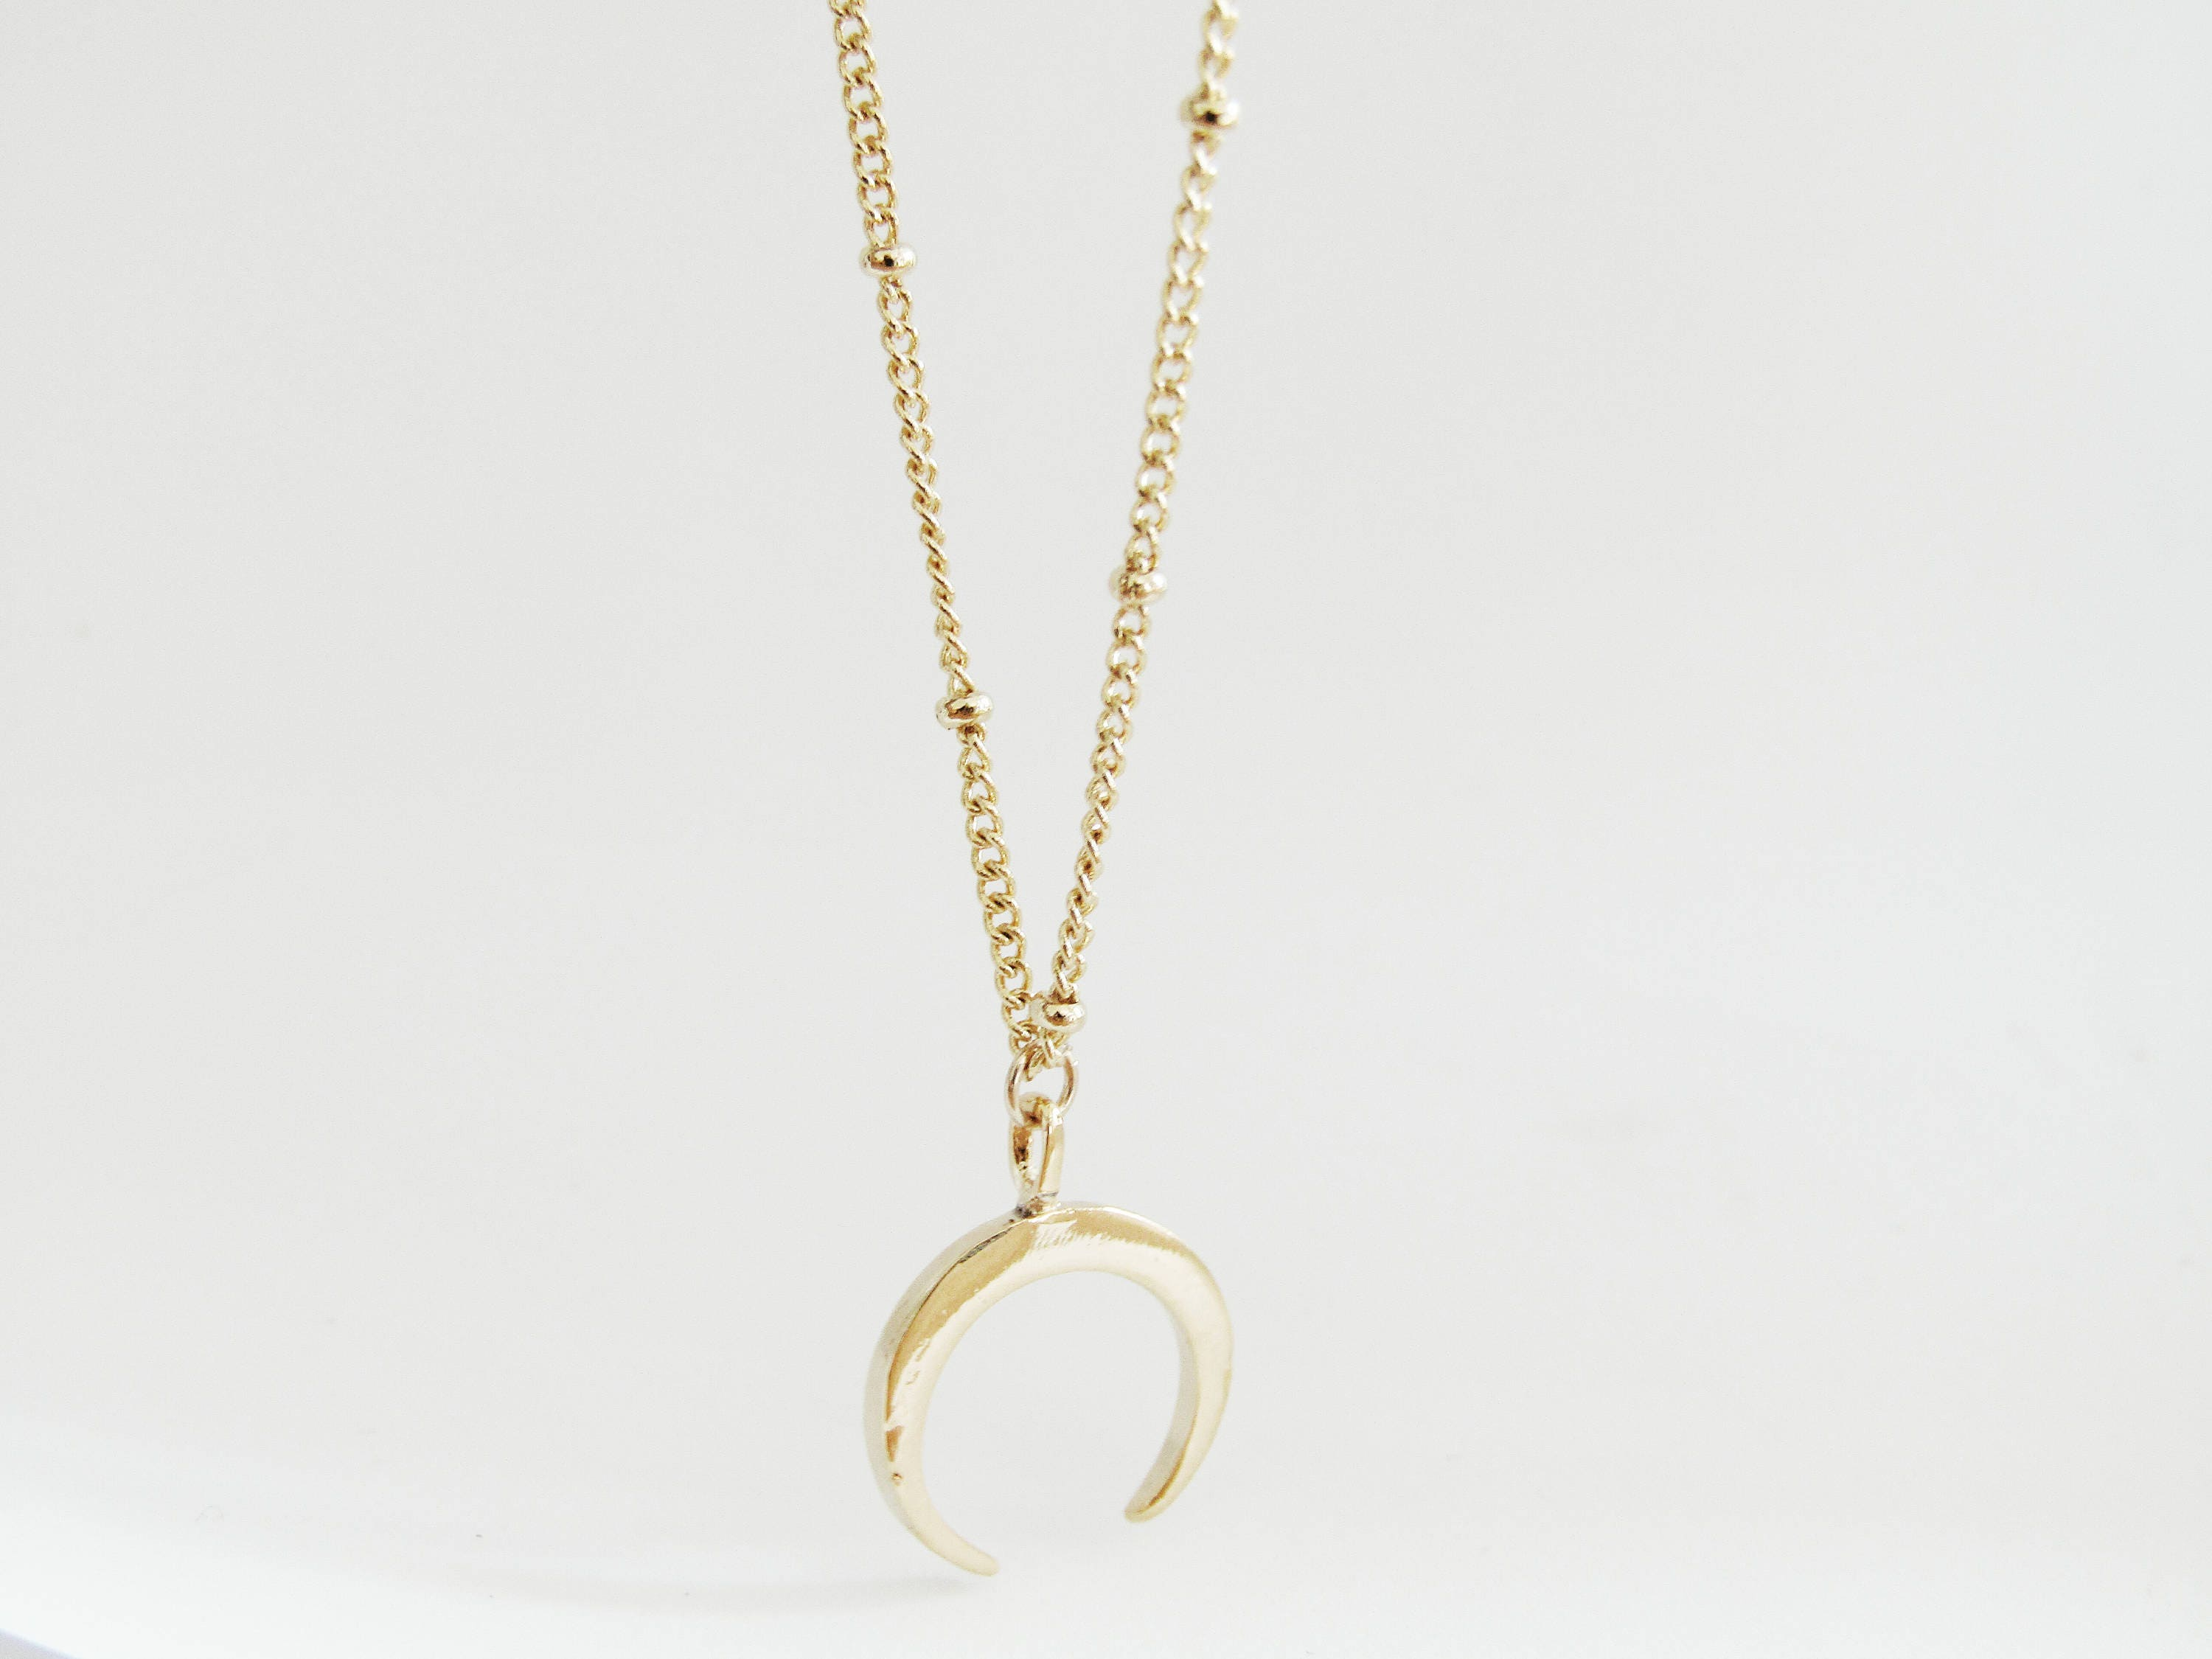 Mini Gold Horn Necklace tusk necklace double horn necklace crescent necklace moon necklace